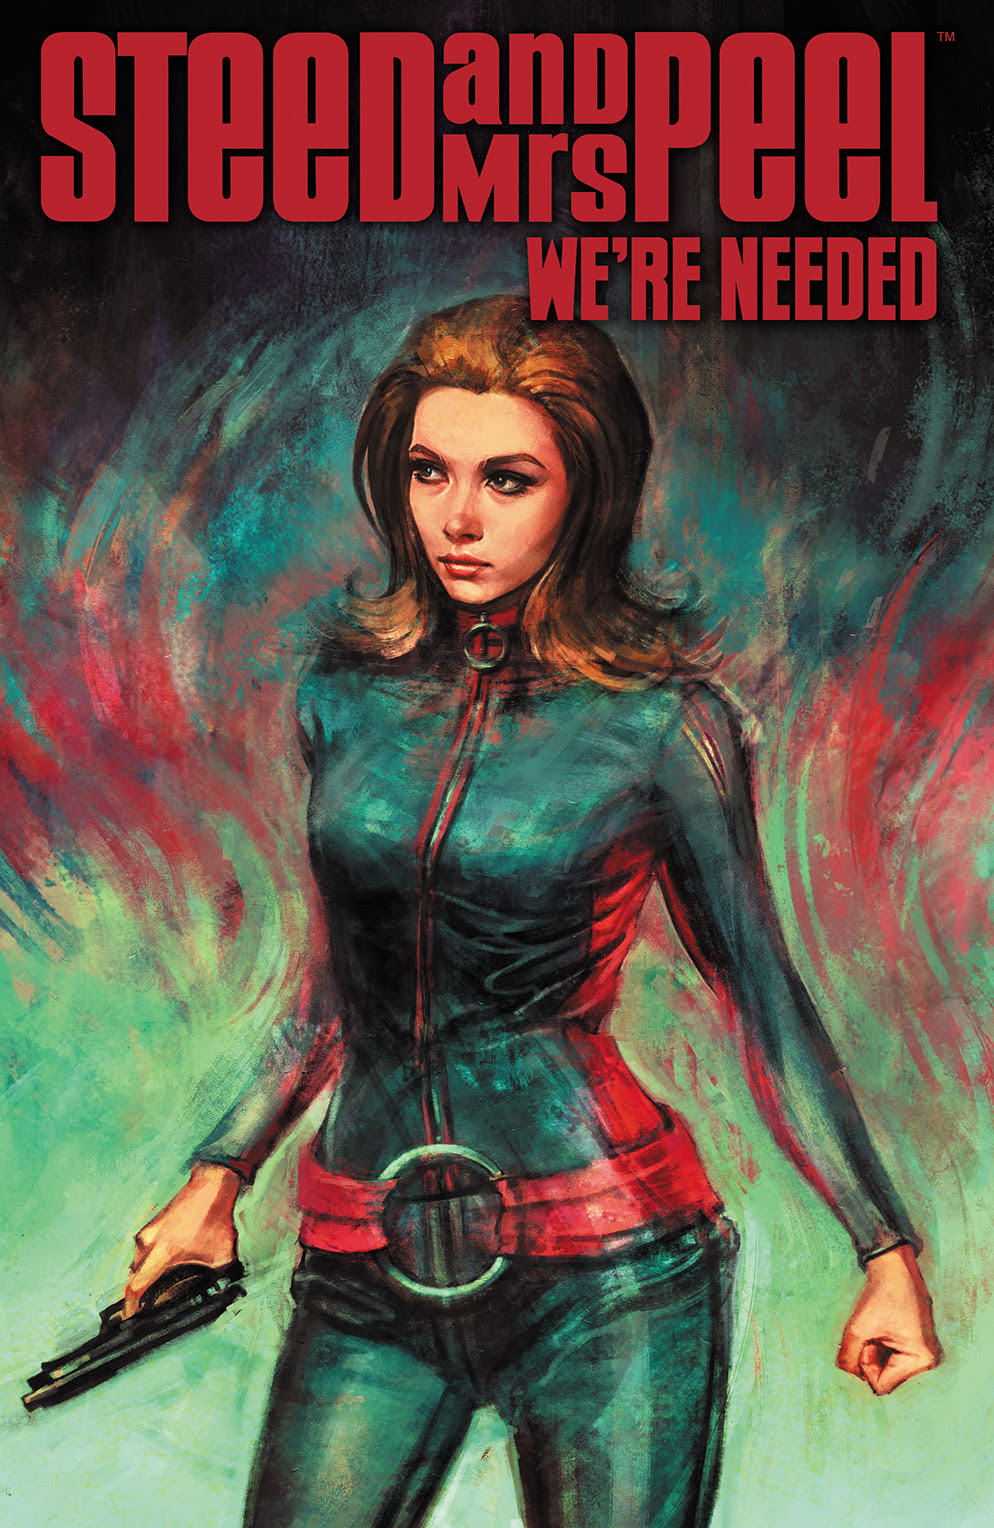 STEED AND MRS. PEEL: WE'RE NEEDED #2 Cover by Alice X. Zhang